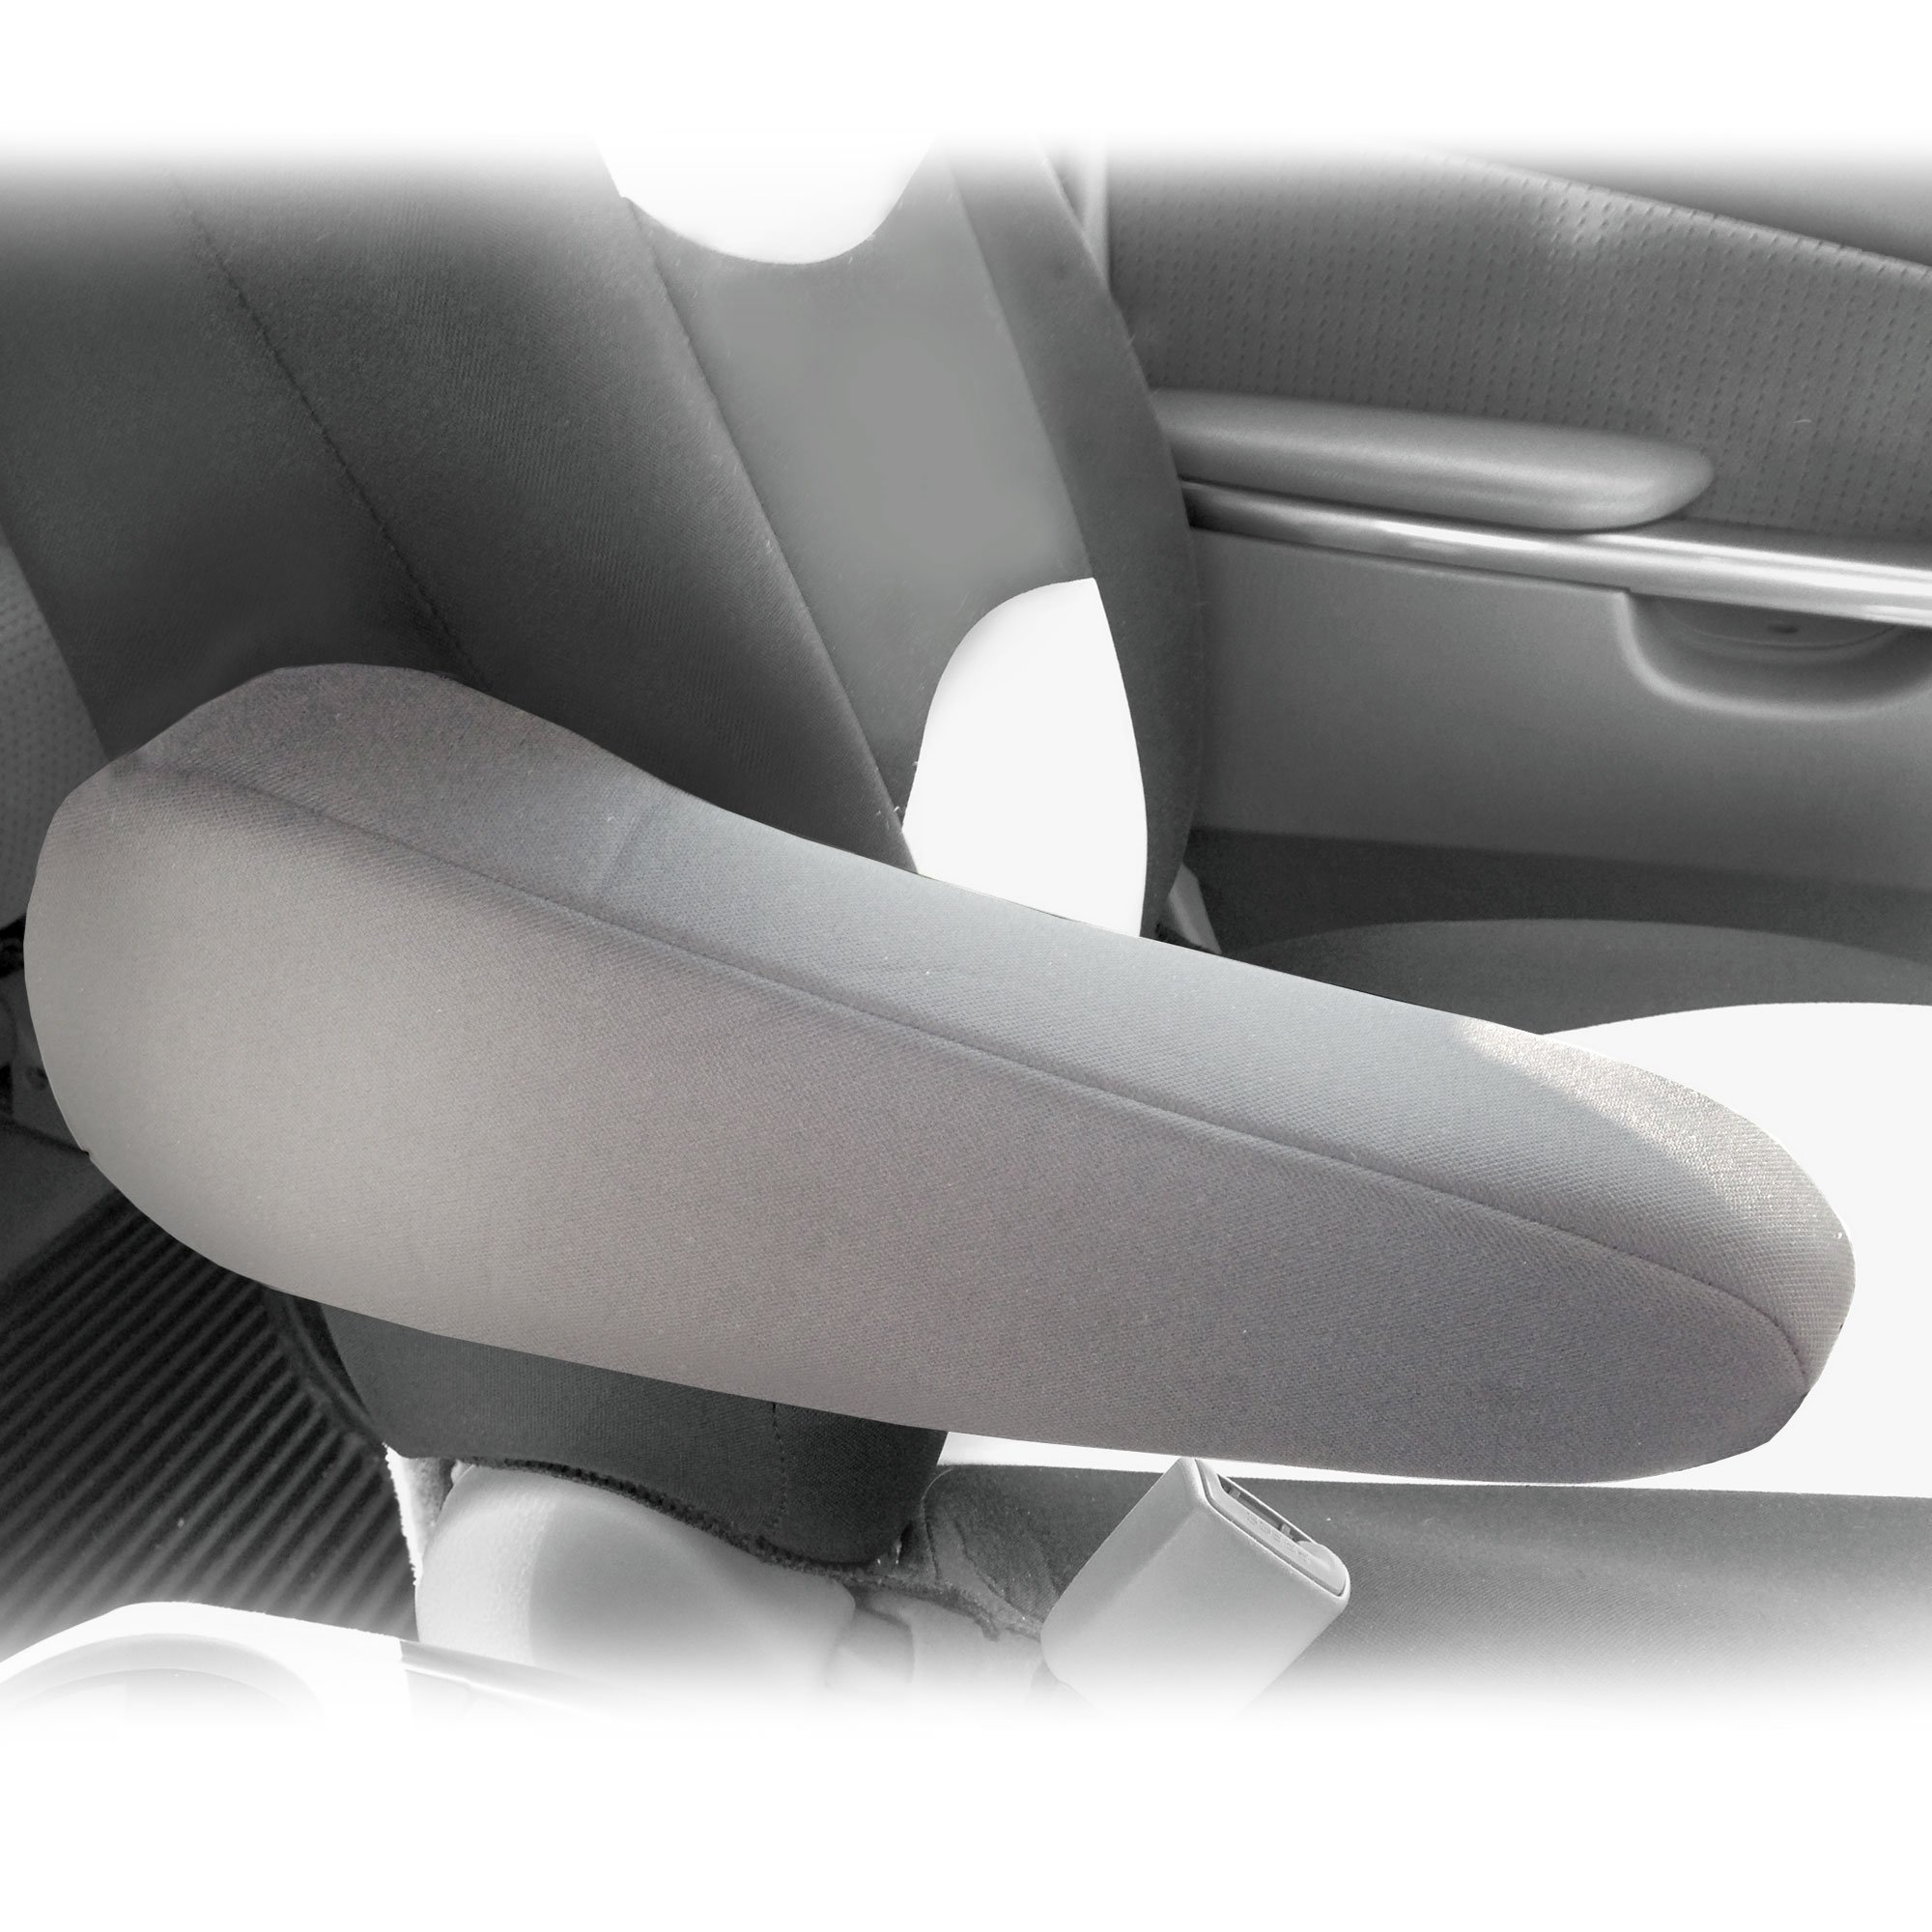 FH Group FH1051GRAY FH1051 Armrest Cover Semi-Universal (Flat Cloth Fabric- One Pair Gray) by FH Group